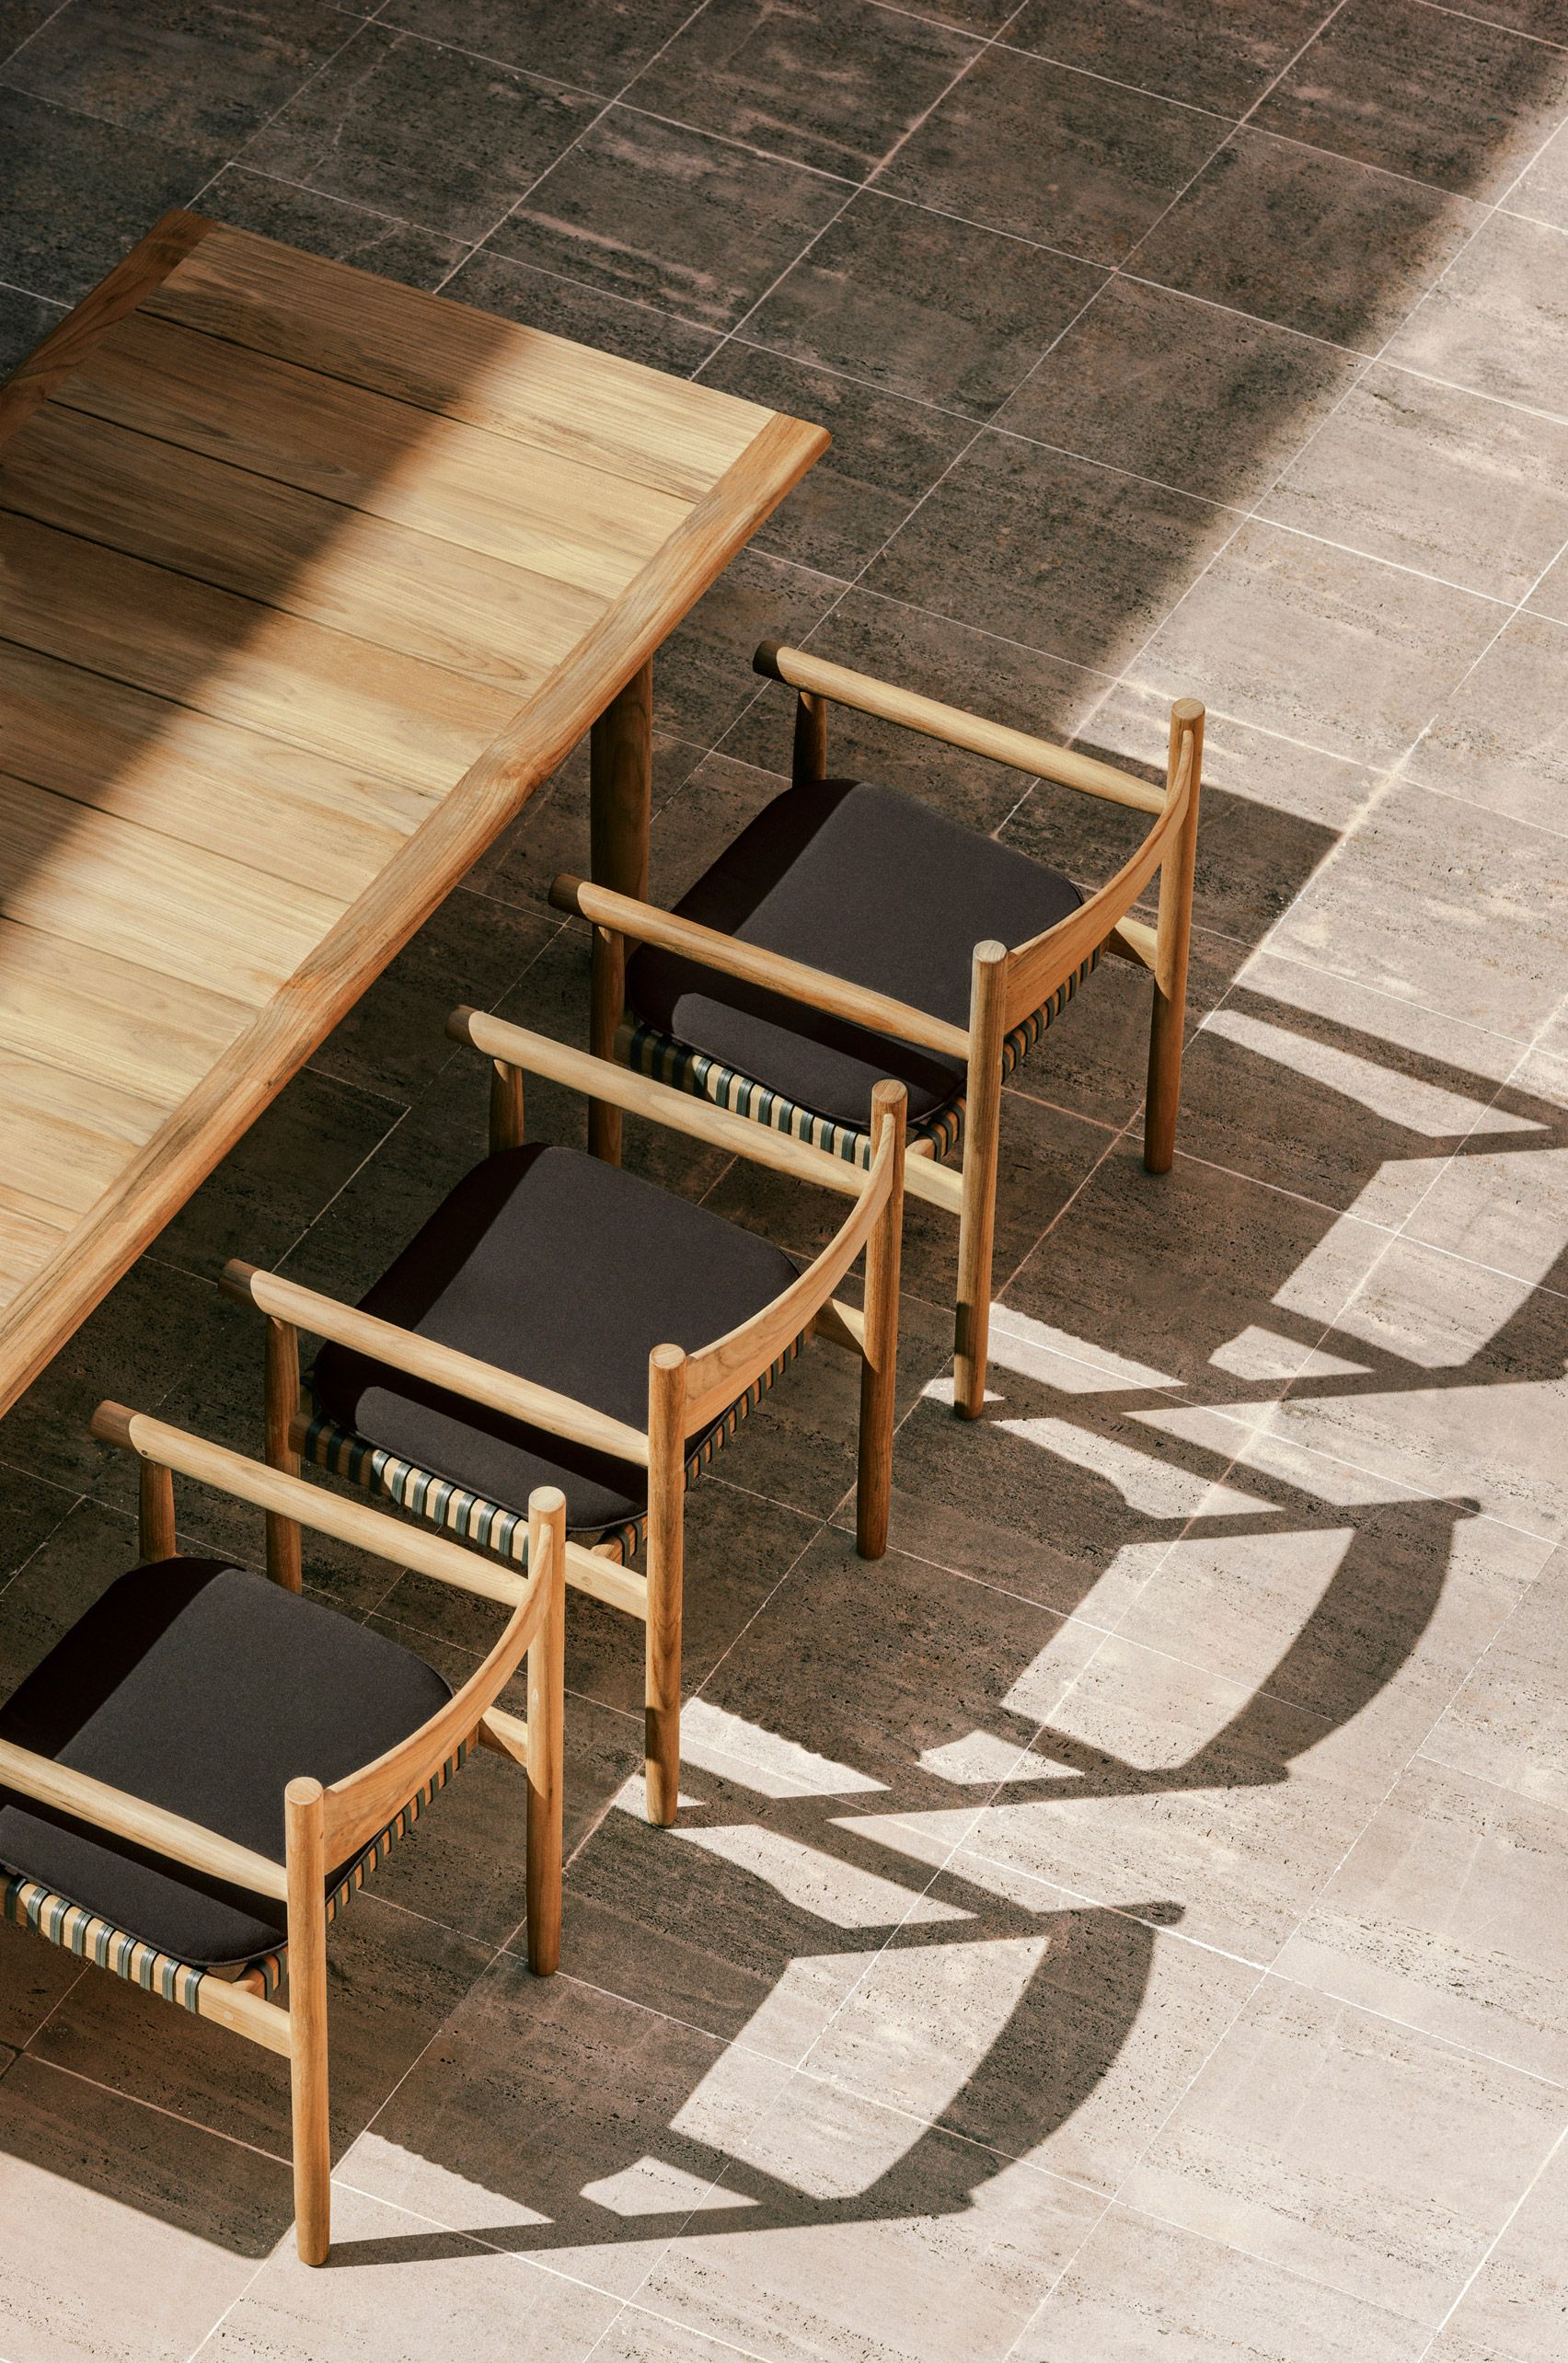 Tibbo by Barber  Osgerby for Dedon  FFE in 2019  Teak